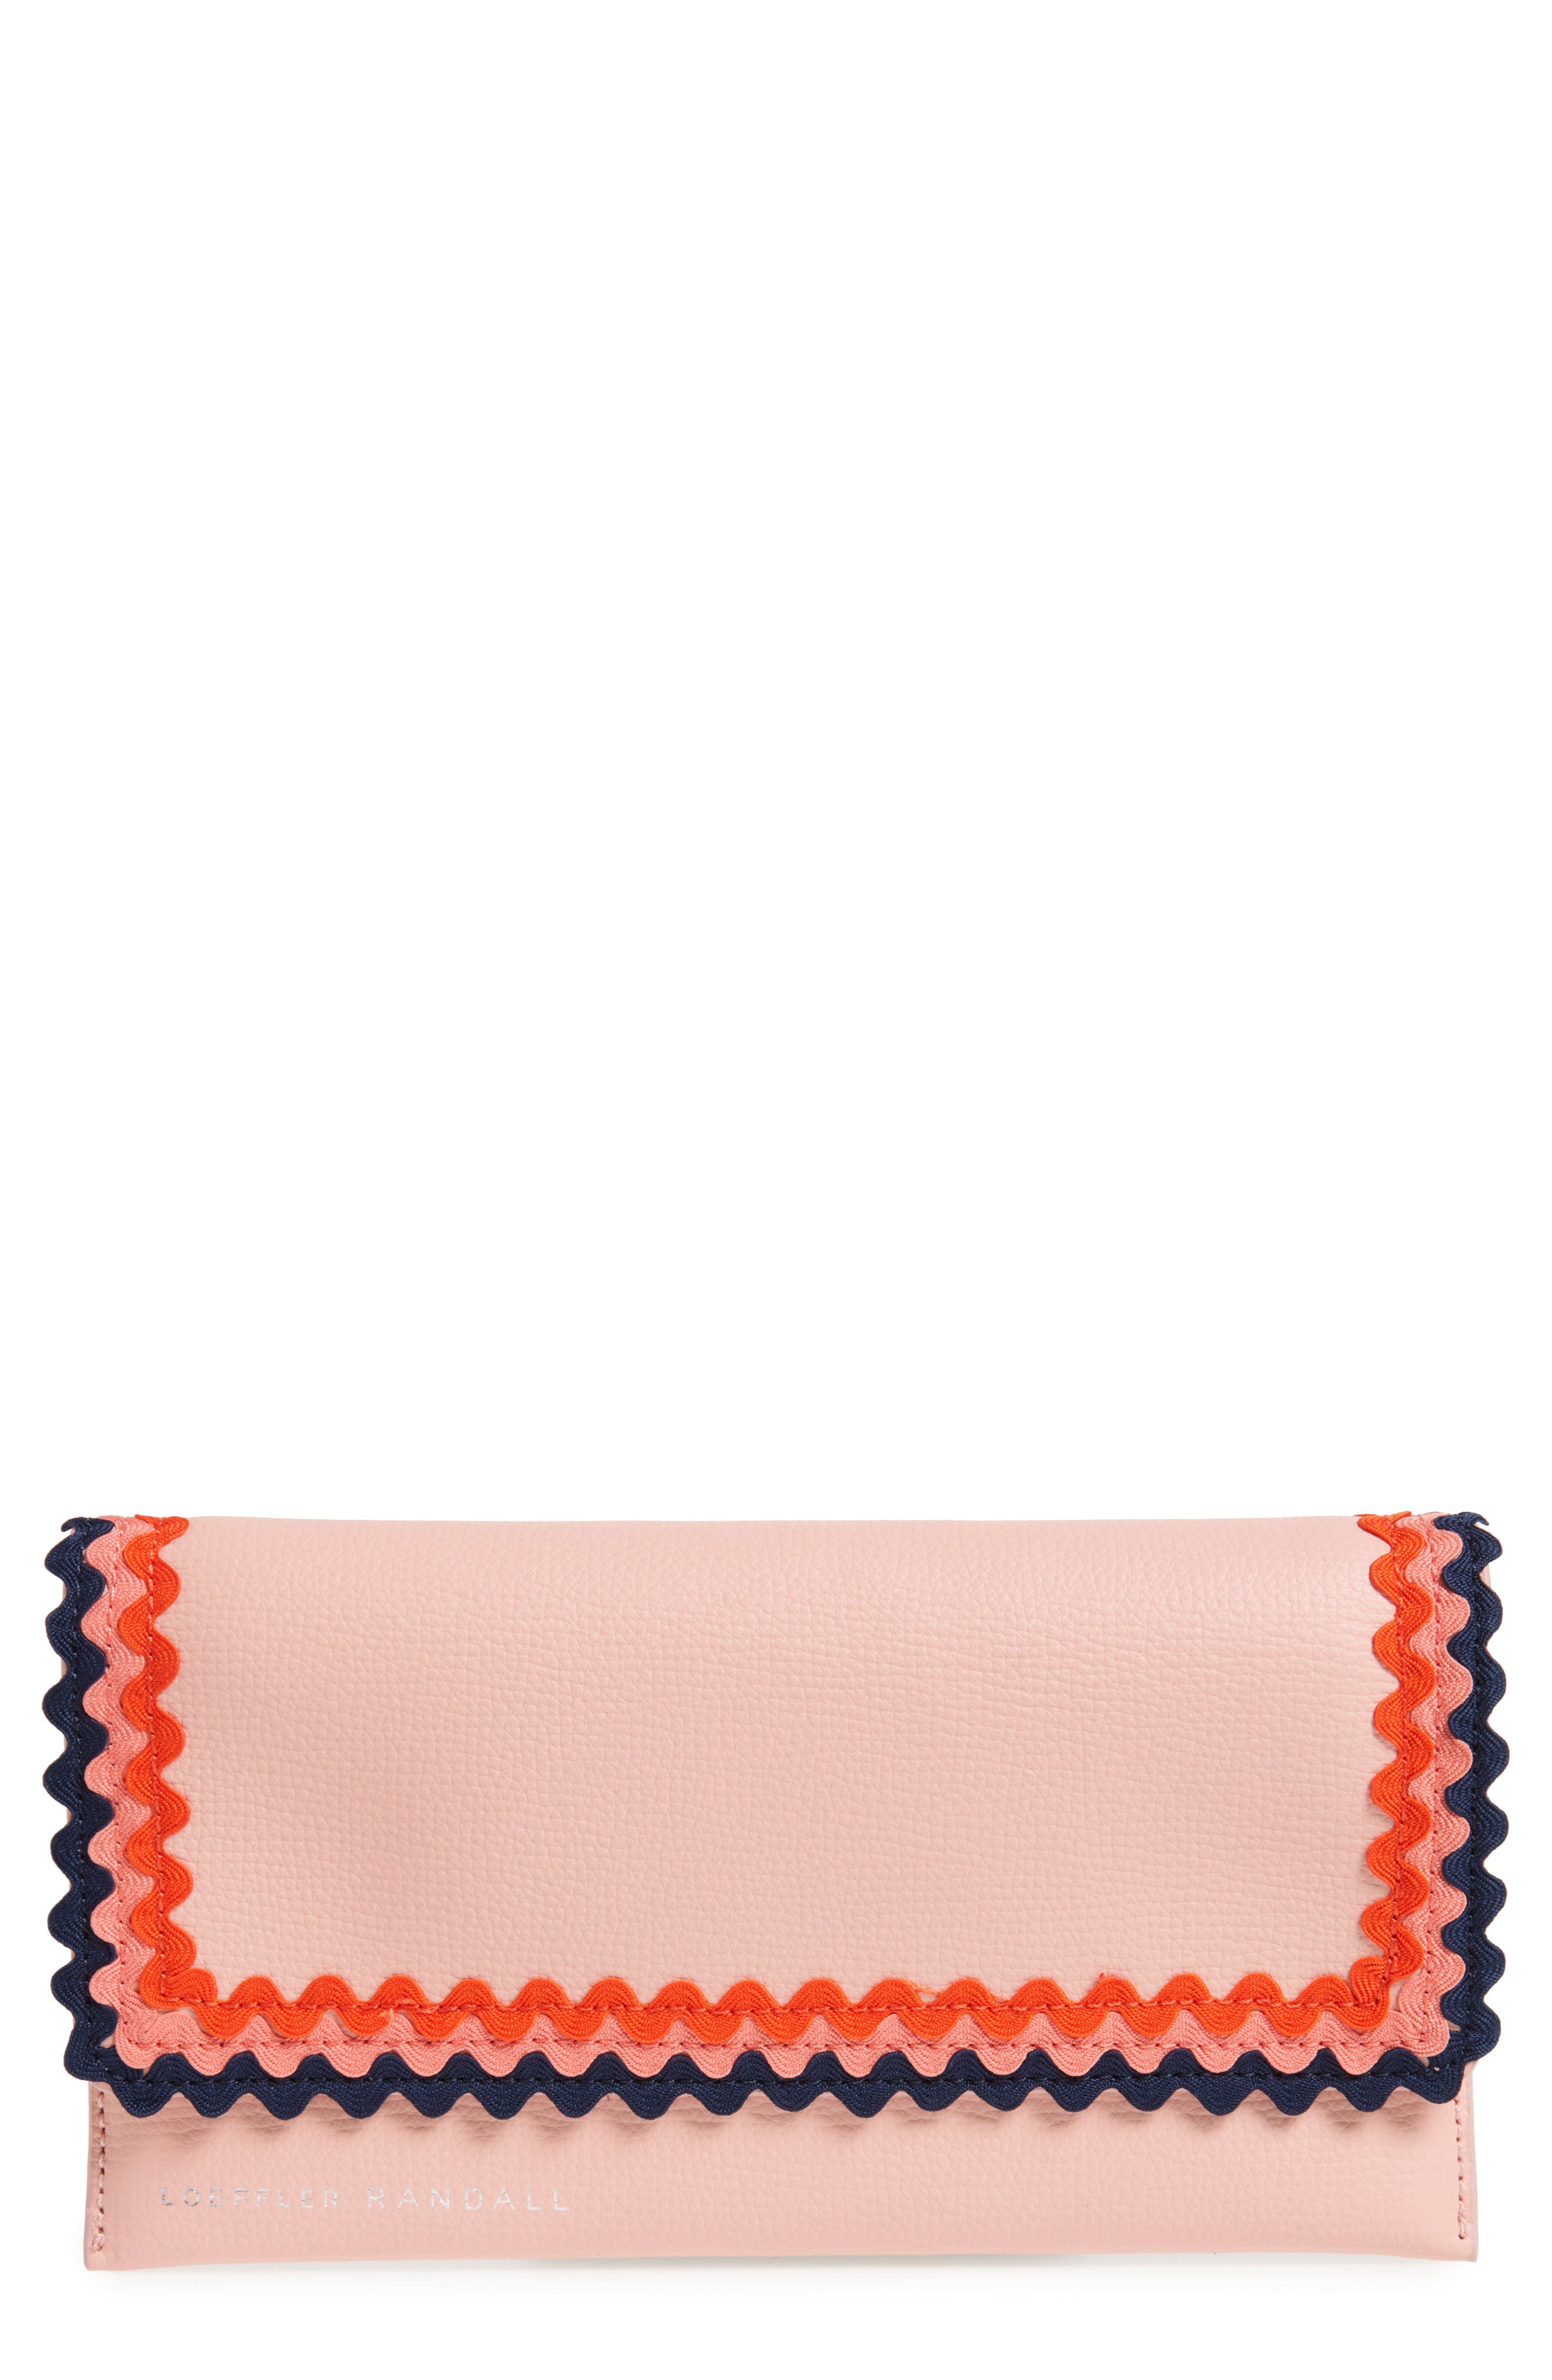 Eveything Embellished Leather Wallet,                             Main thumbnail 1, color,                             Ballet/ Multi